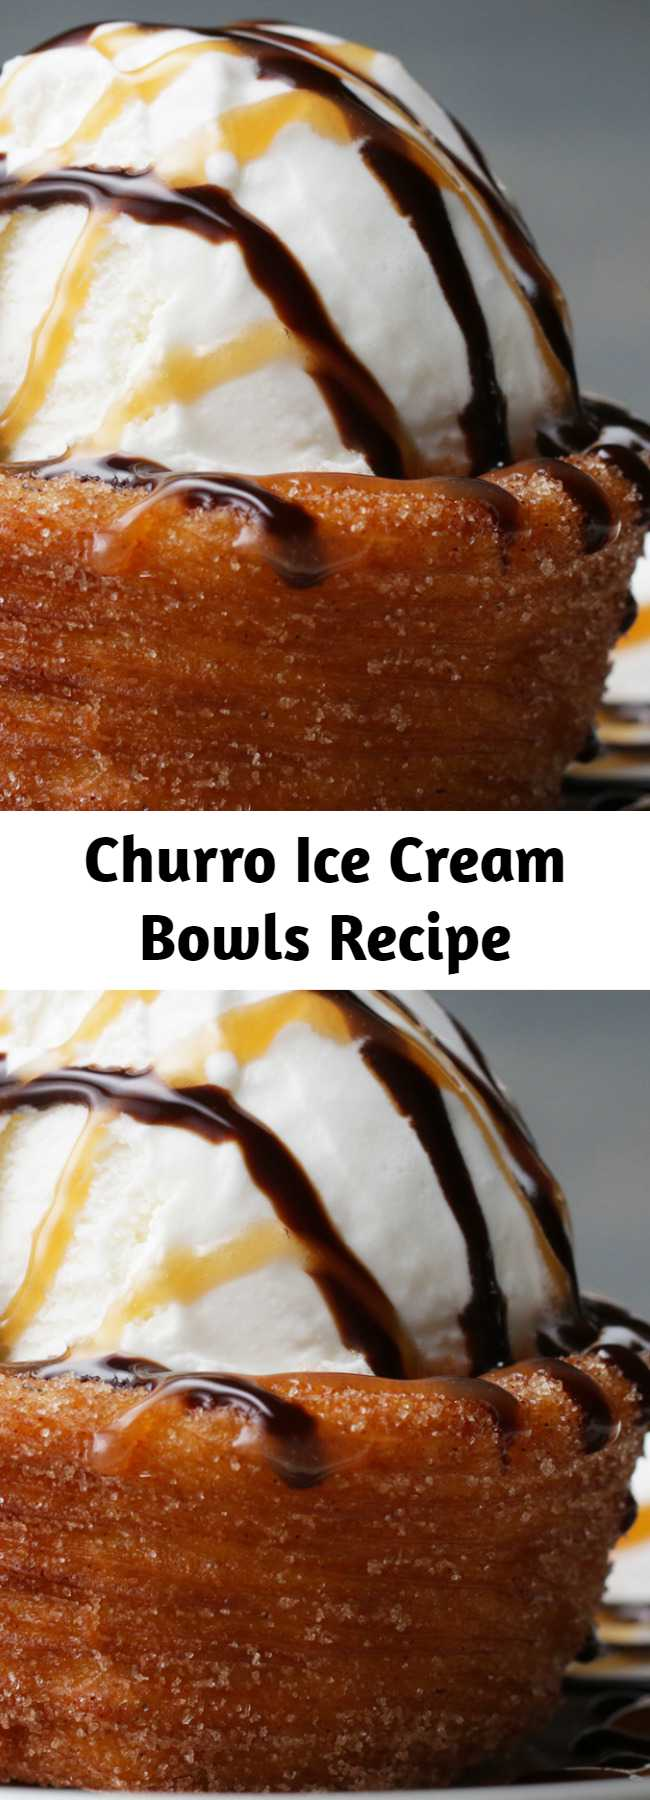 Churro Ice Cream Bowls Recipe - Add a lot of cooking spray to the pan! Also make sure the churro dough is completely frozen! This was so good! Try it with horchata ice cream 🍨😋